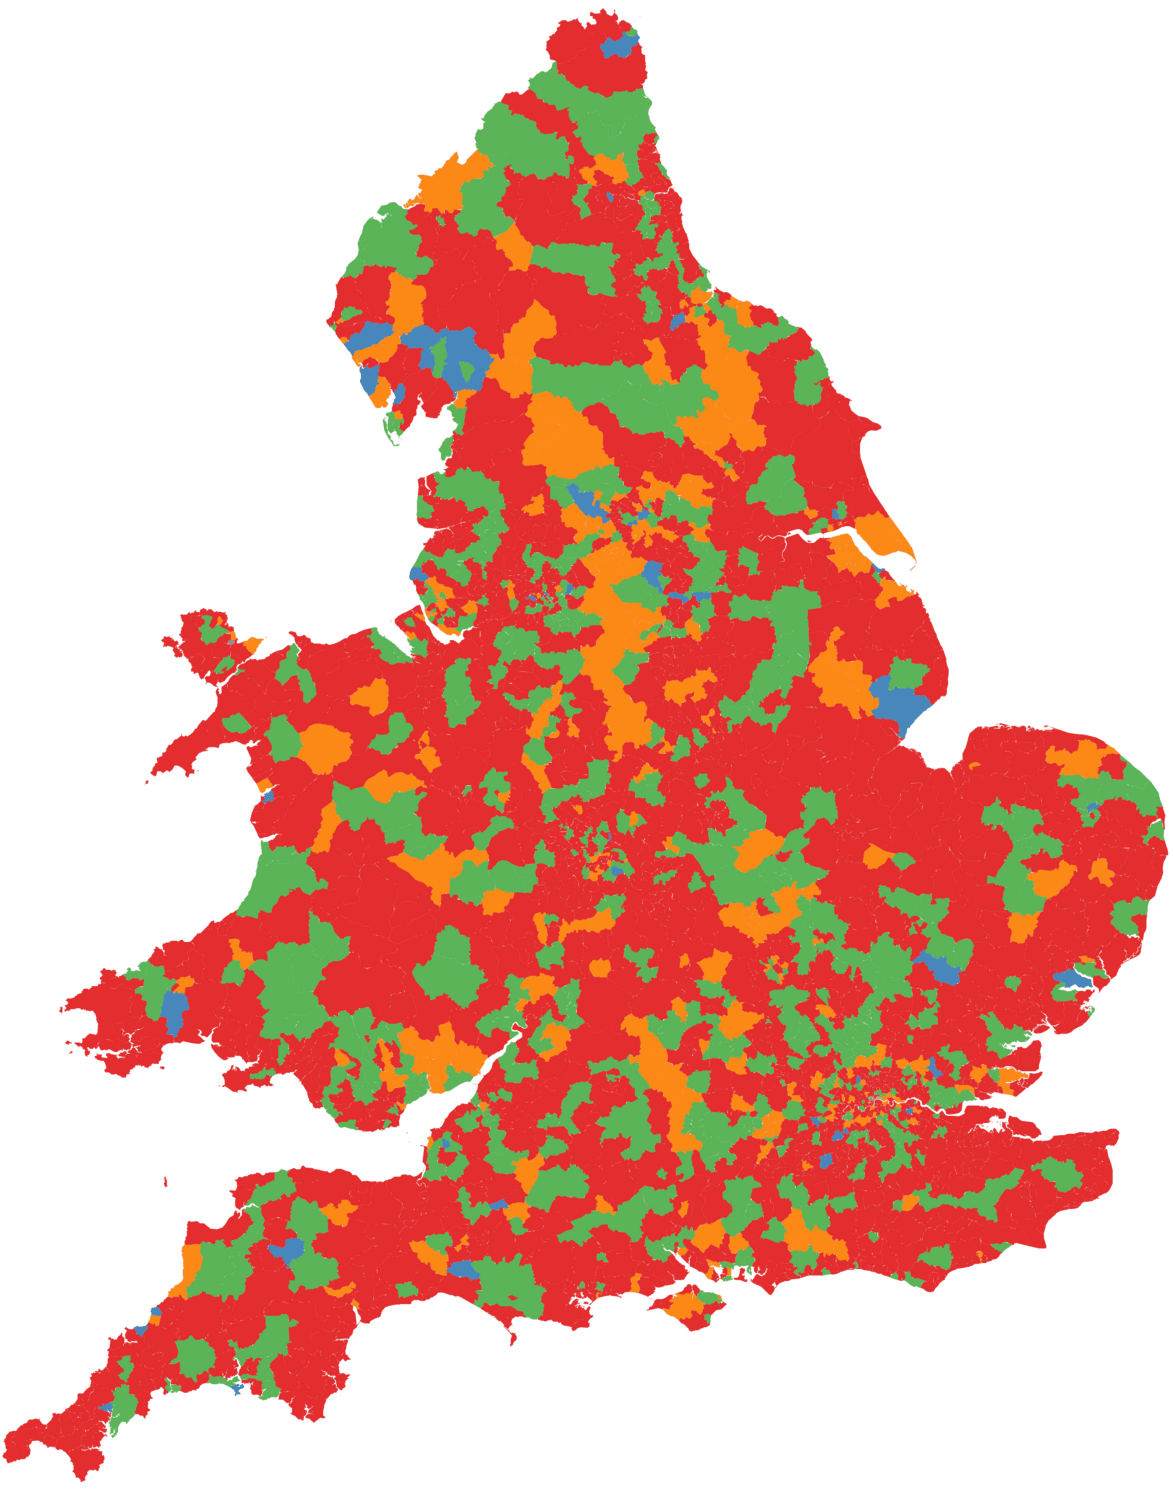 Uk violent crime high season by postcode district